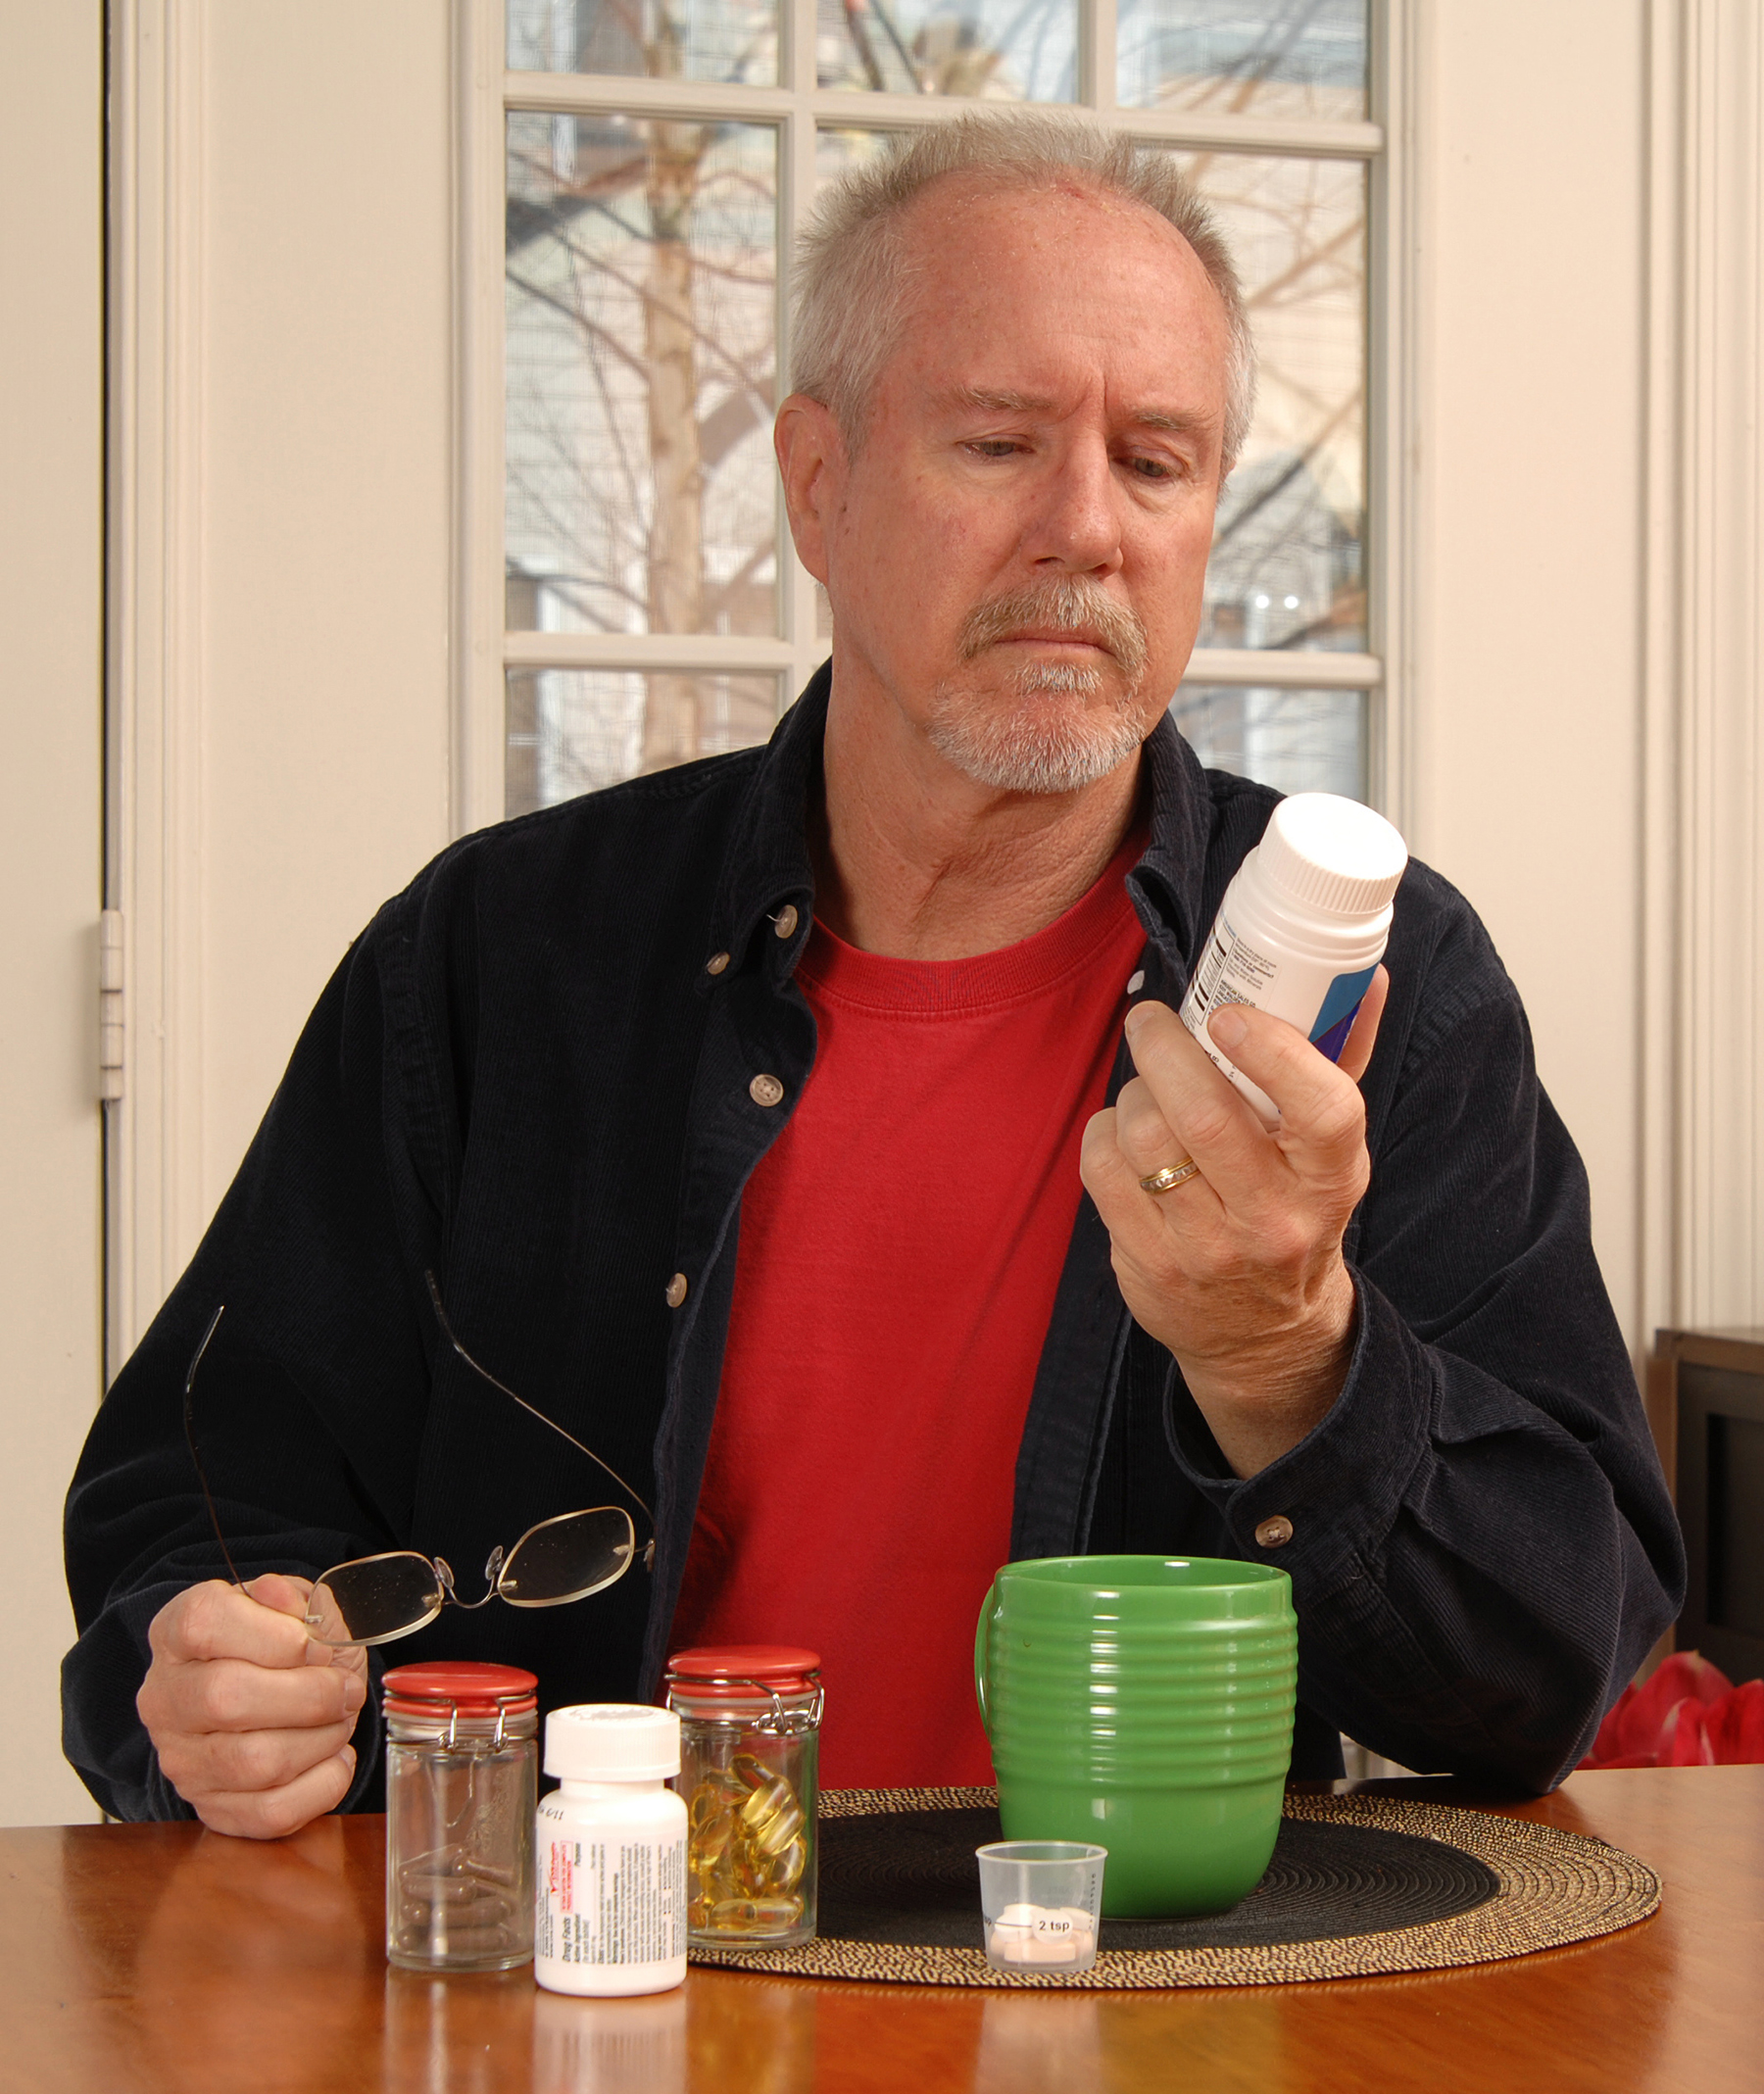 Senior man reading medication label at kitchen table.